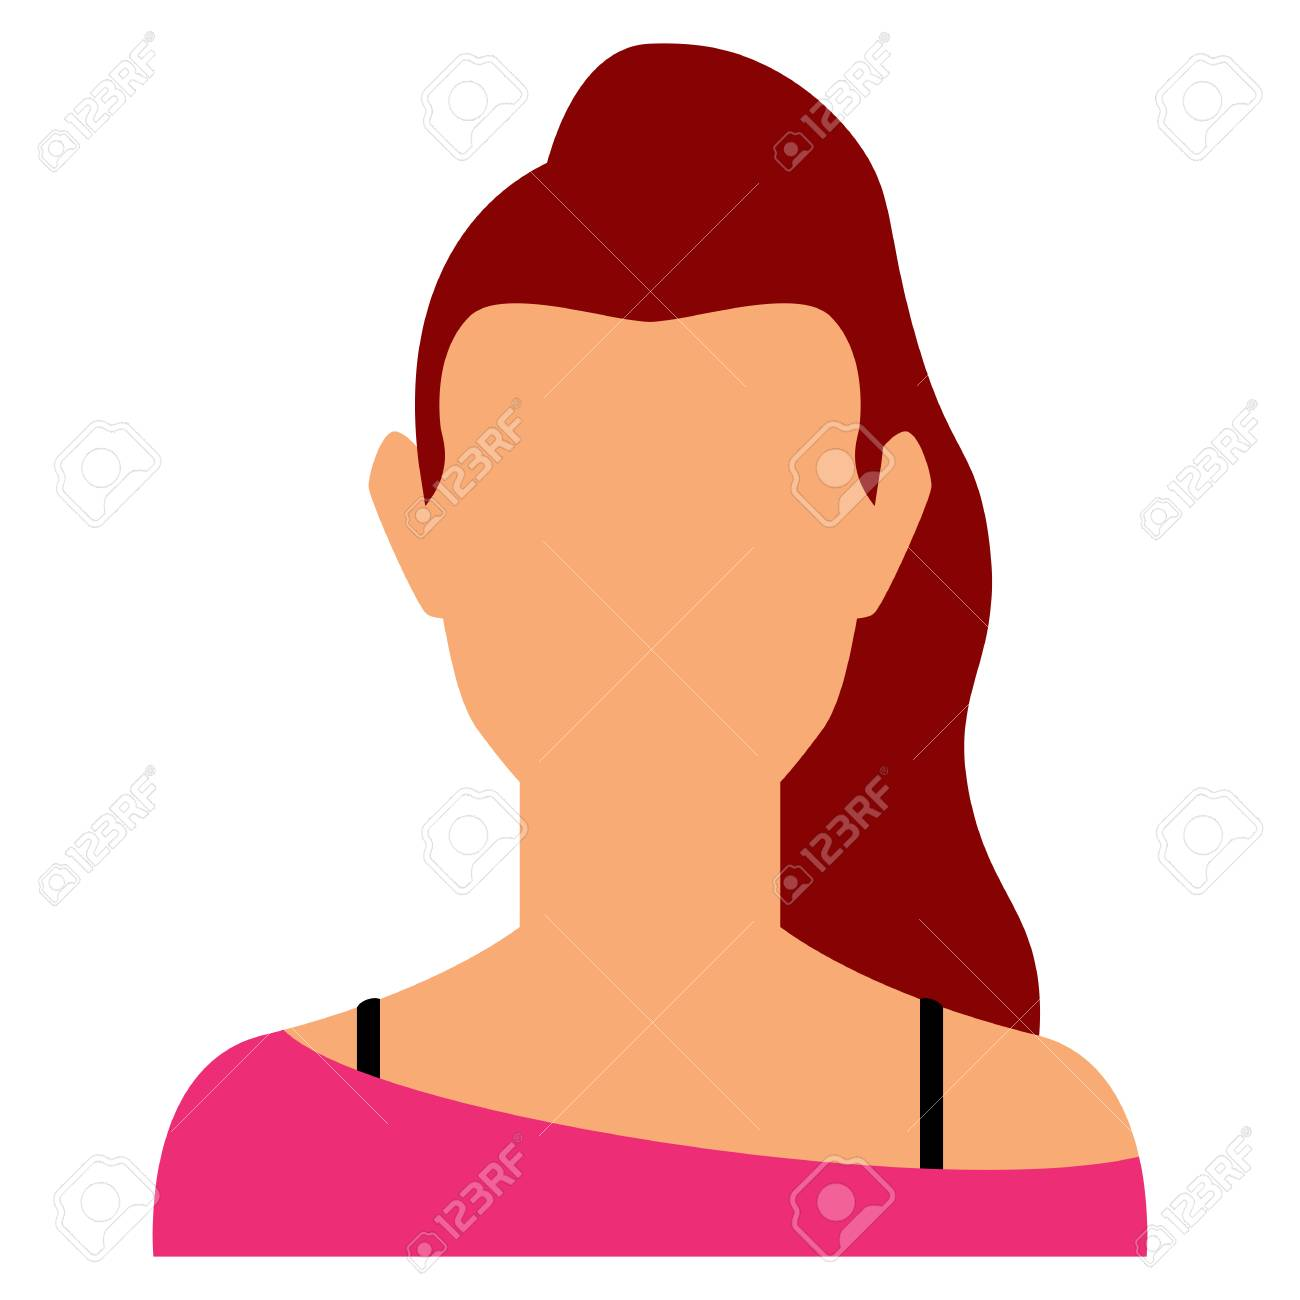 Vector Avatar Character Isolated On White Background - 120899092